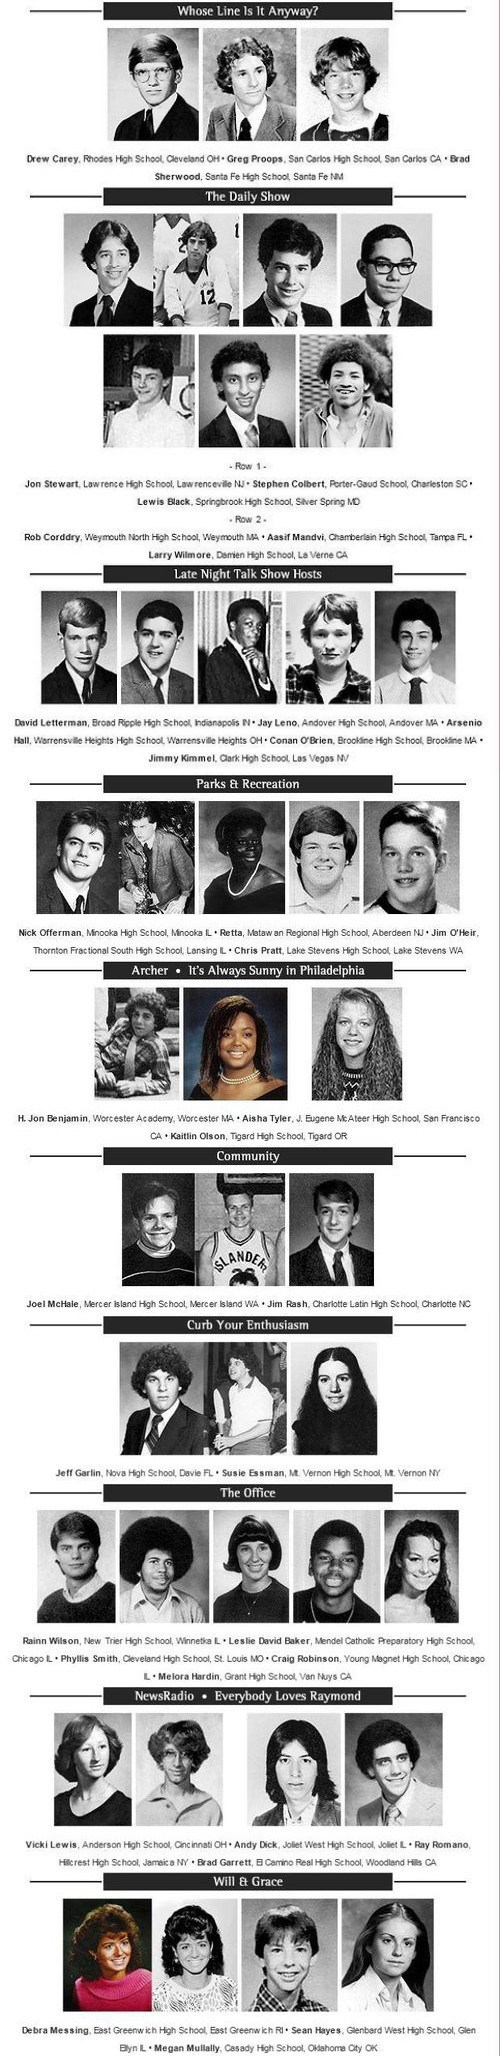 celeb high school yearbook school g rated - 7902226176